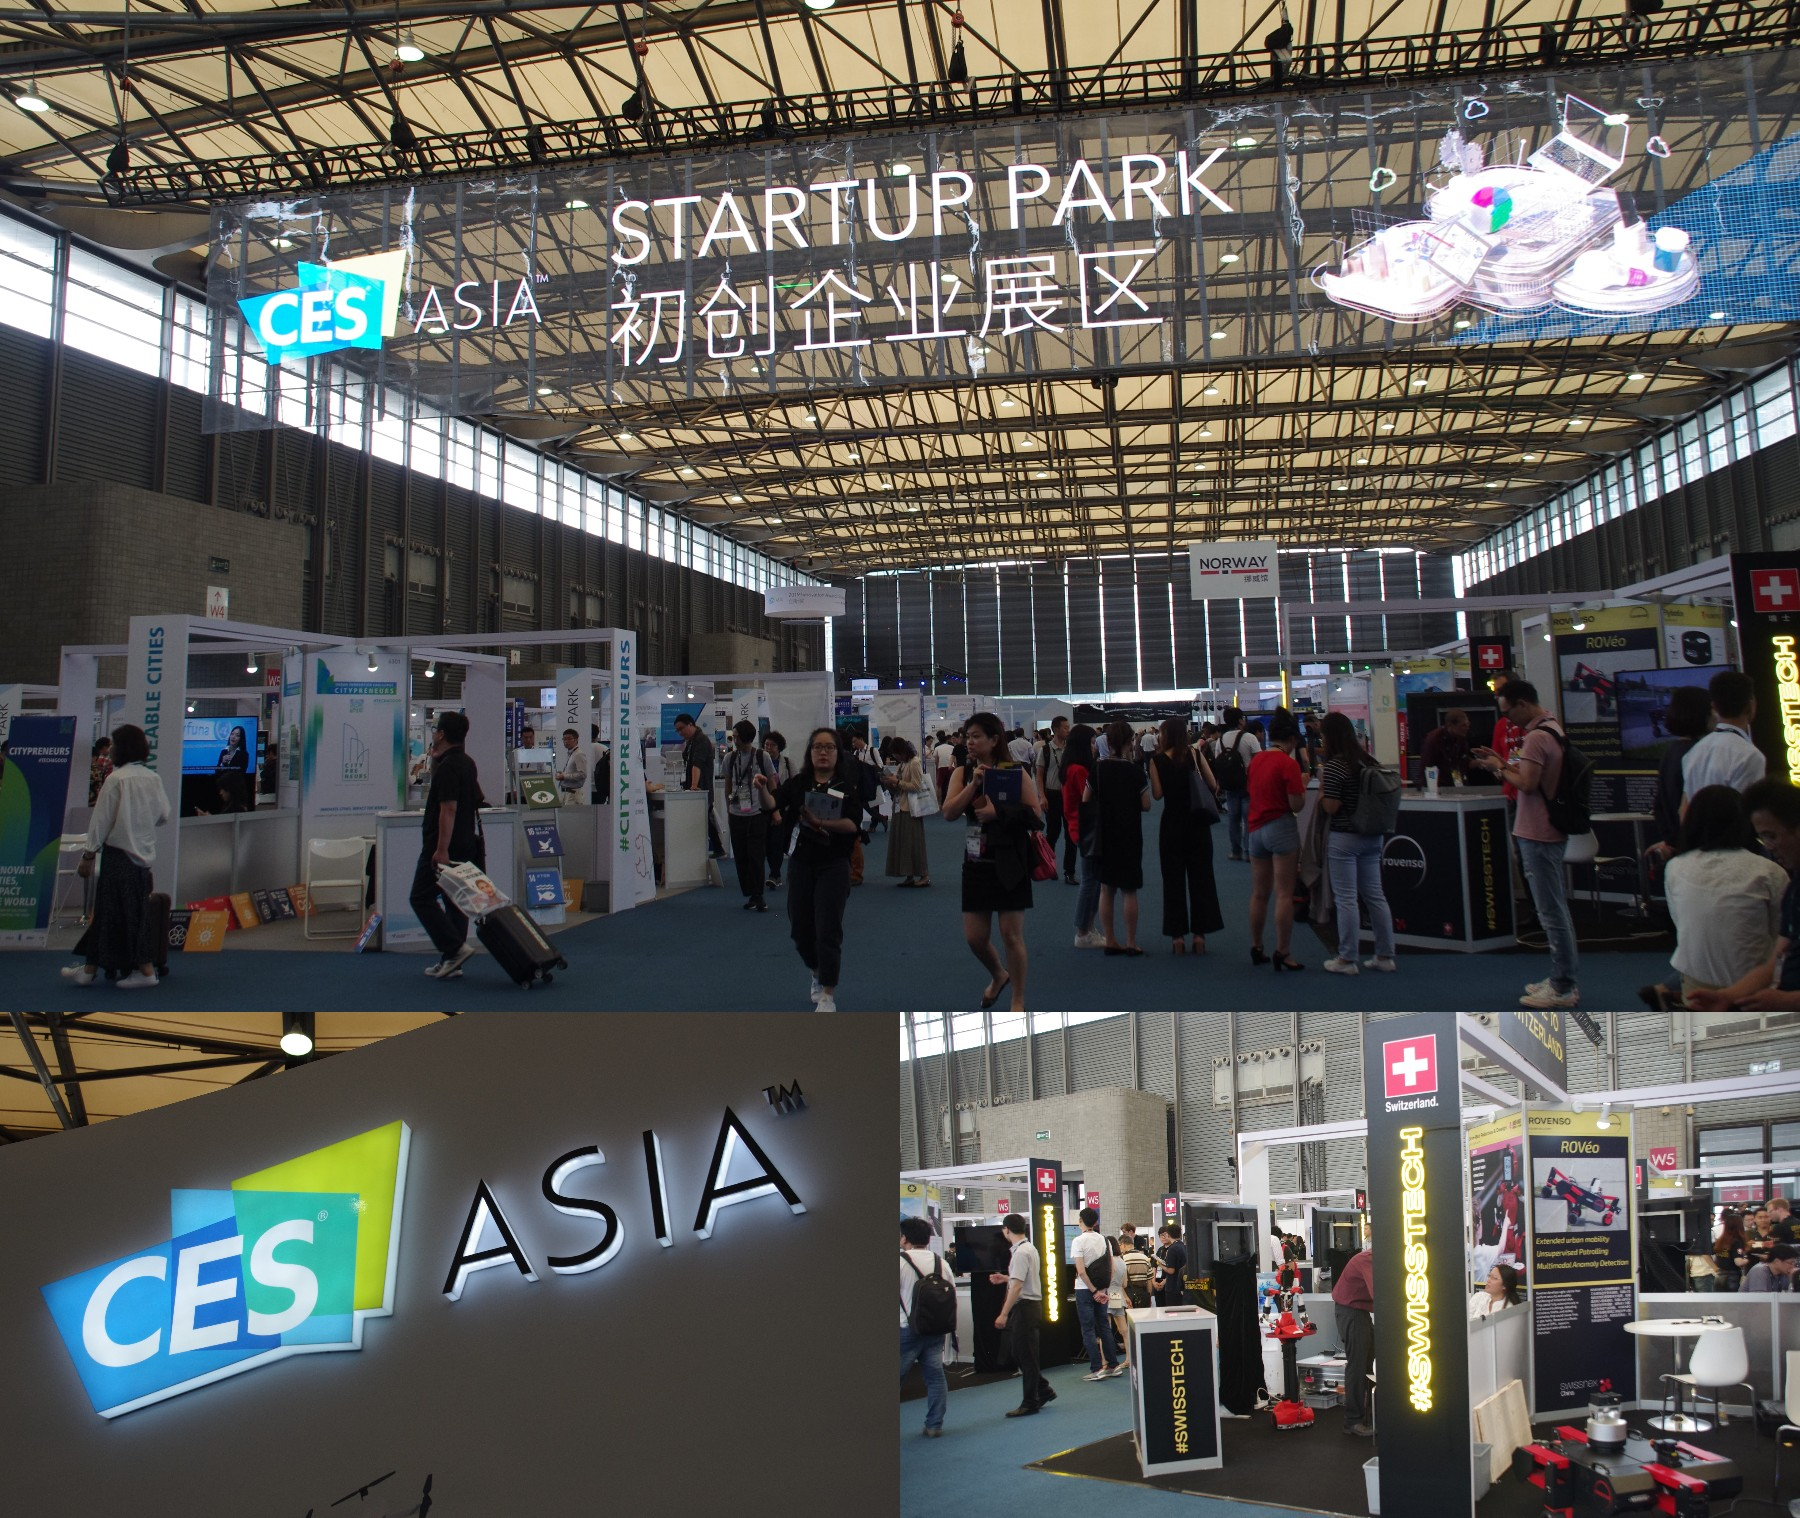 CES Asia 2019のStart Up Park